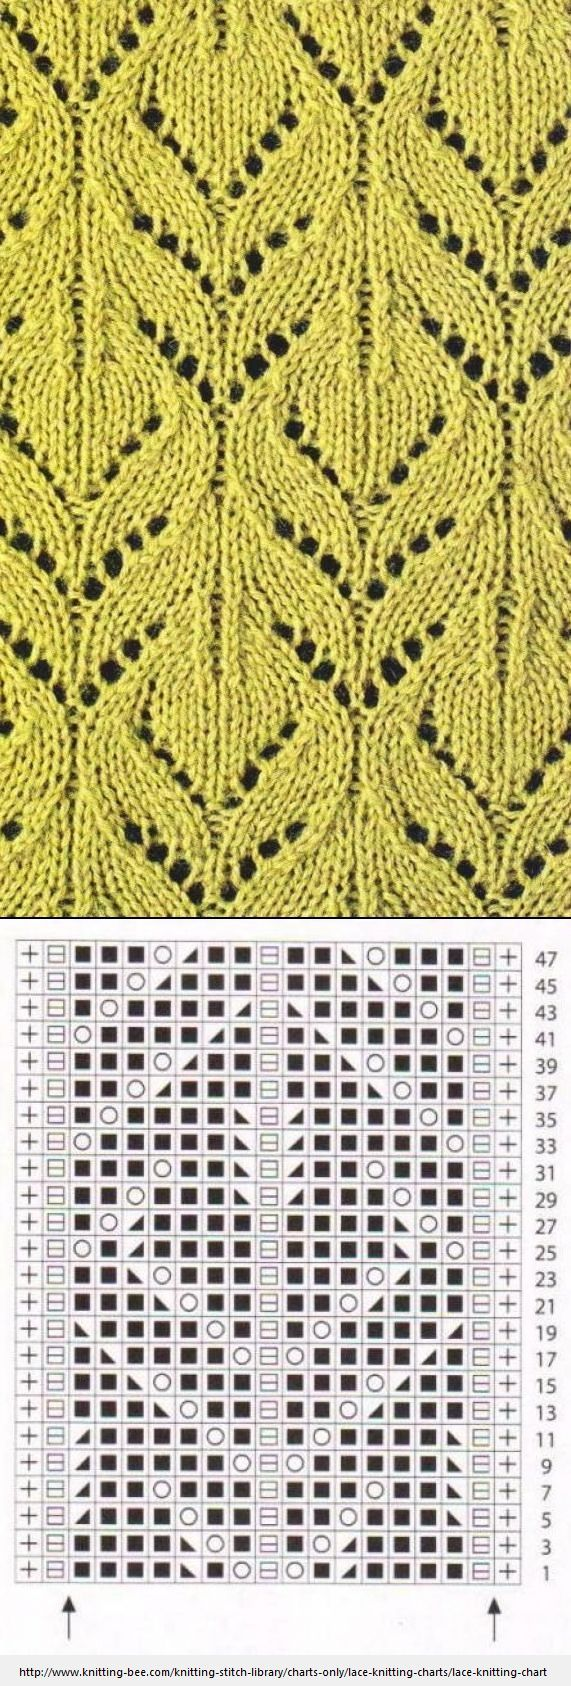 Lace Knitting Stitches Pinterest : 25+ best ideas about Lace knitting patterns on Pinterest Lace knitting, Lac...